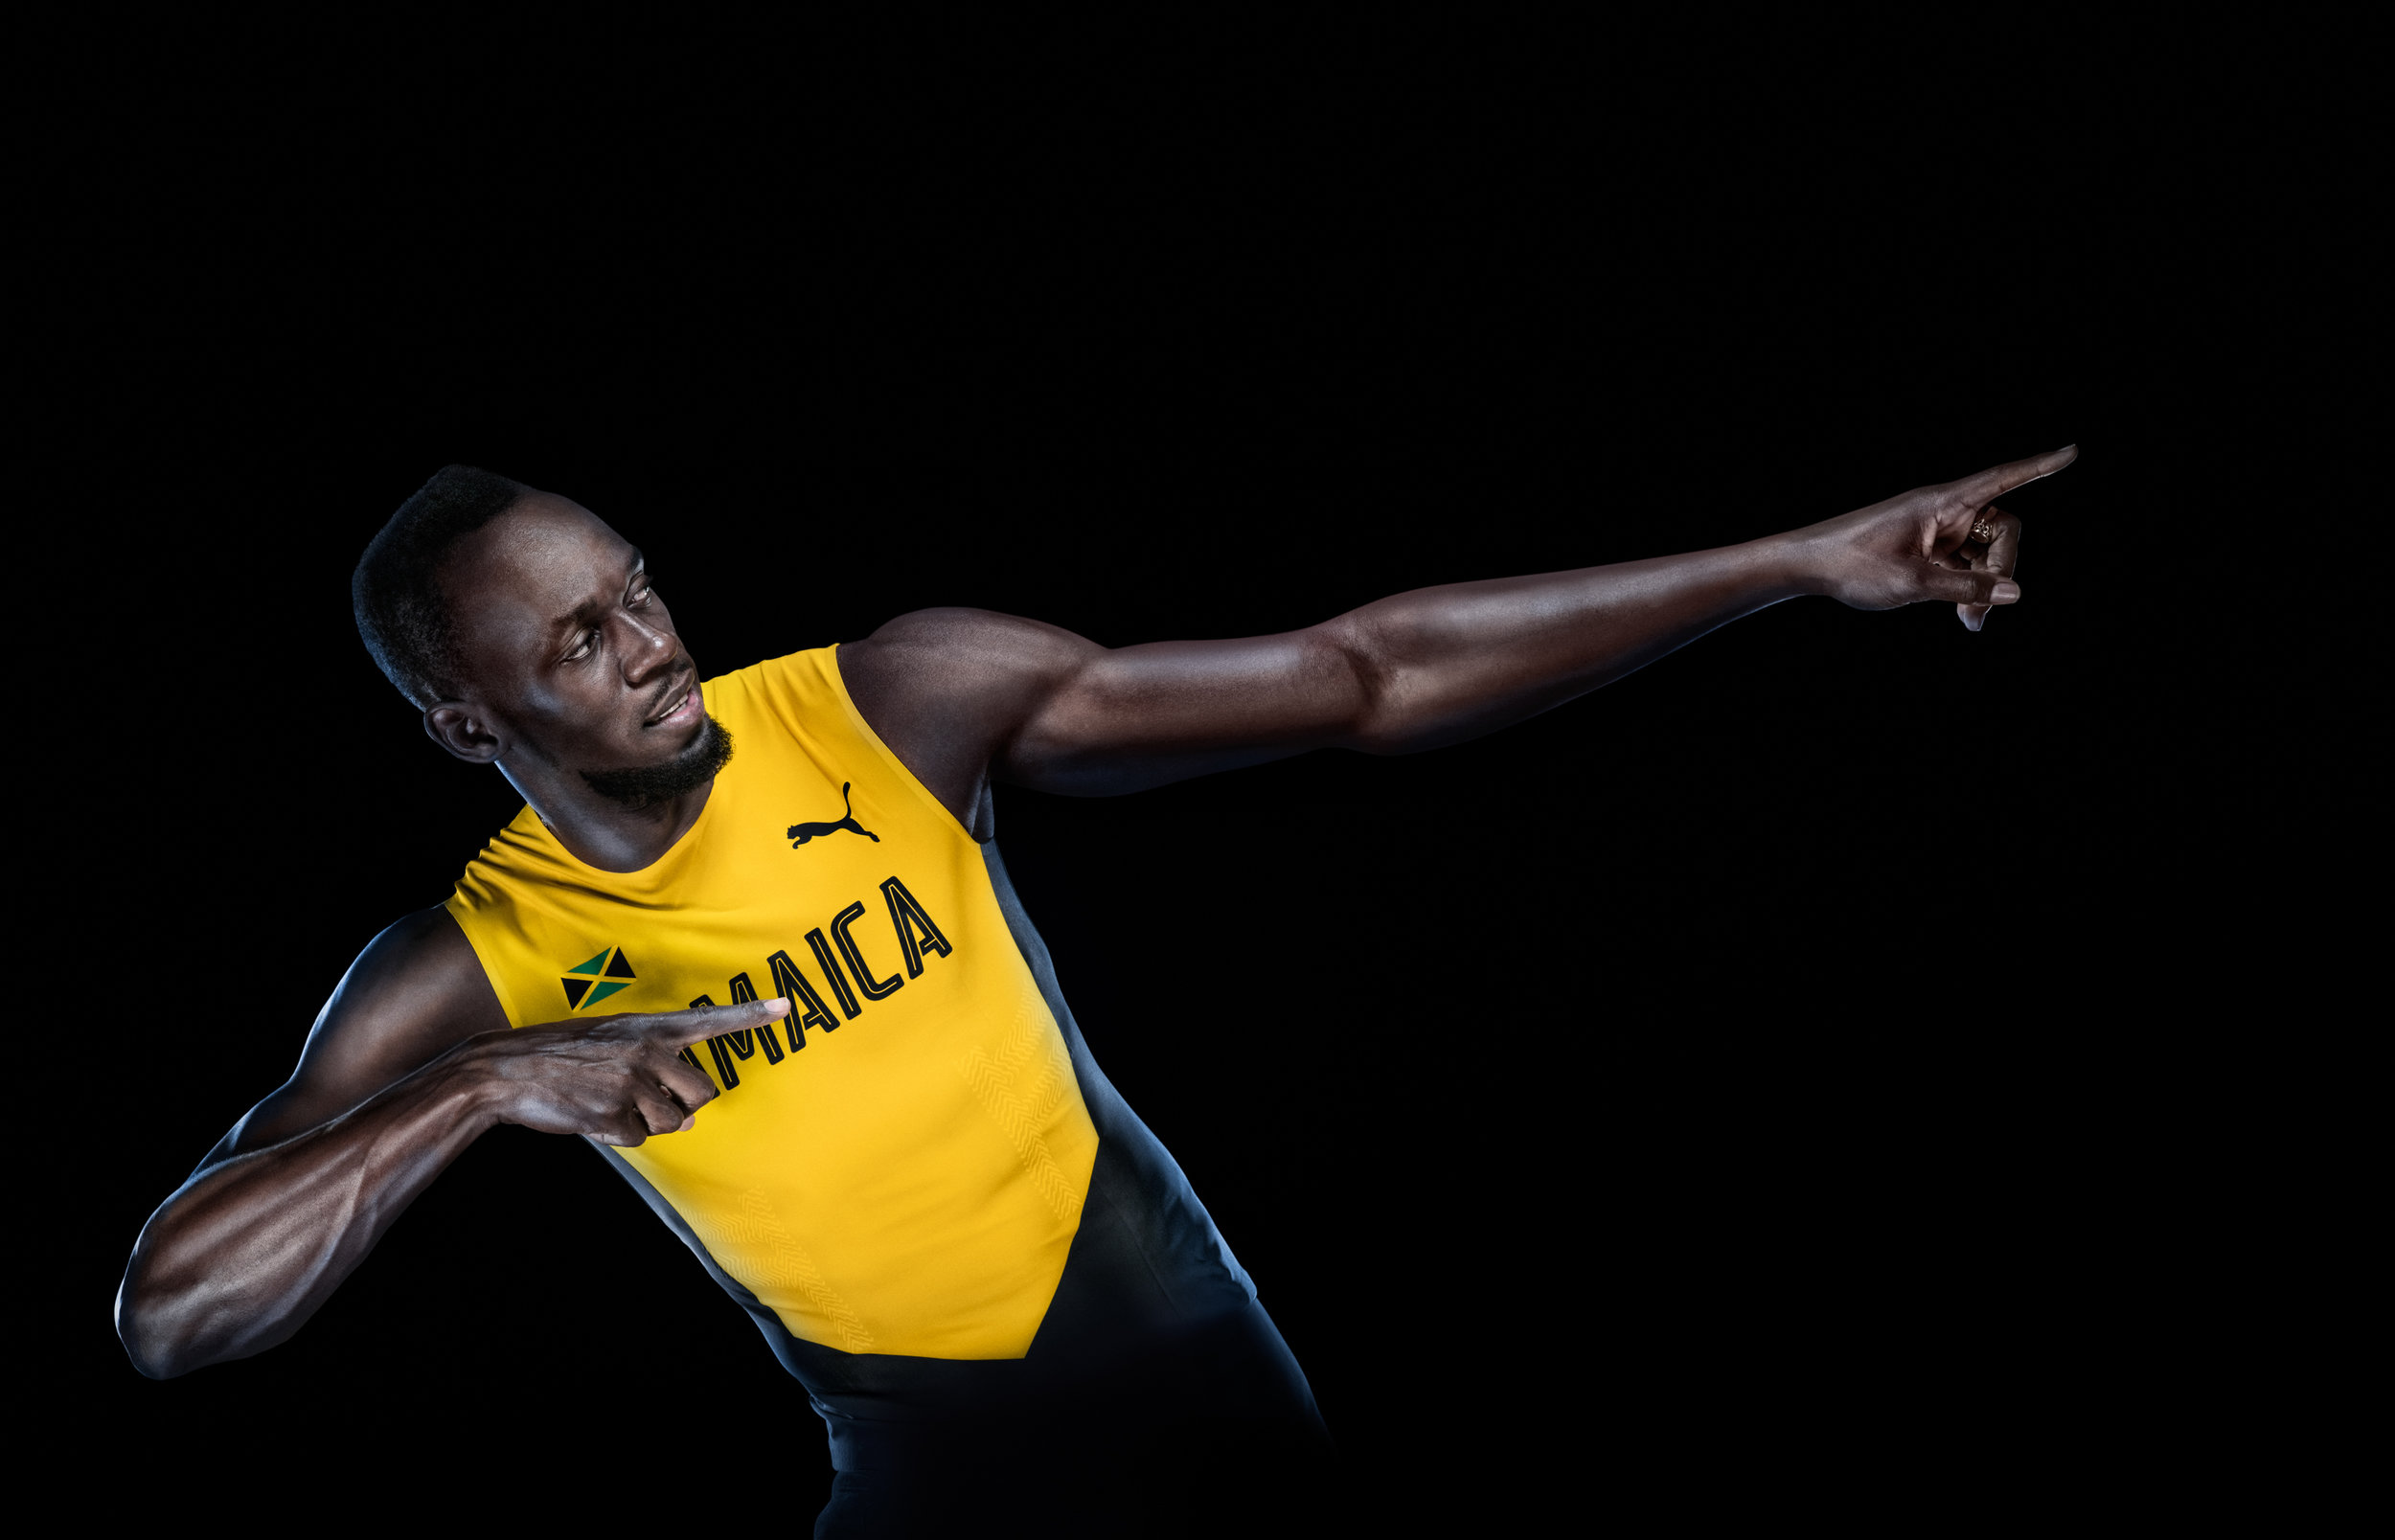 WORLD'S FASTEST MAN ATHLETE USIAN BOLT PHOTO BY PAUL COOPER